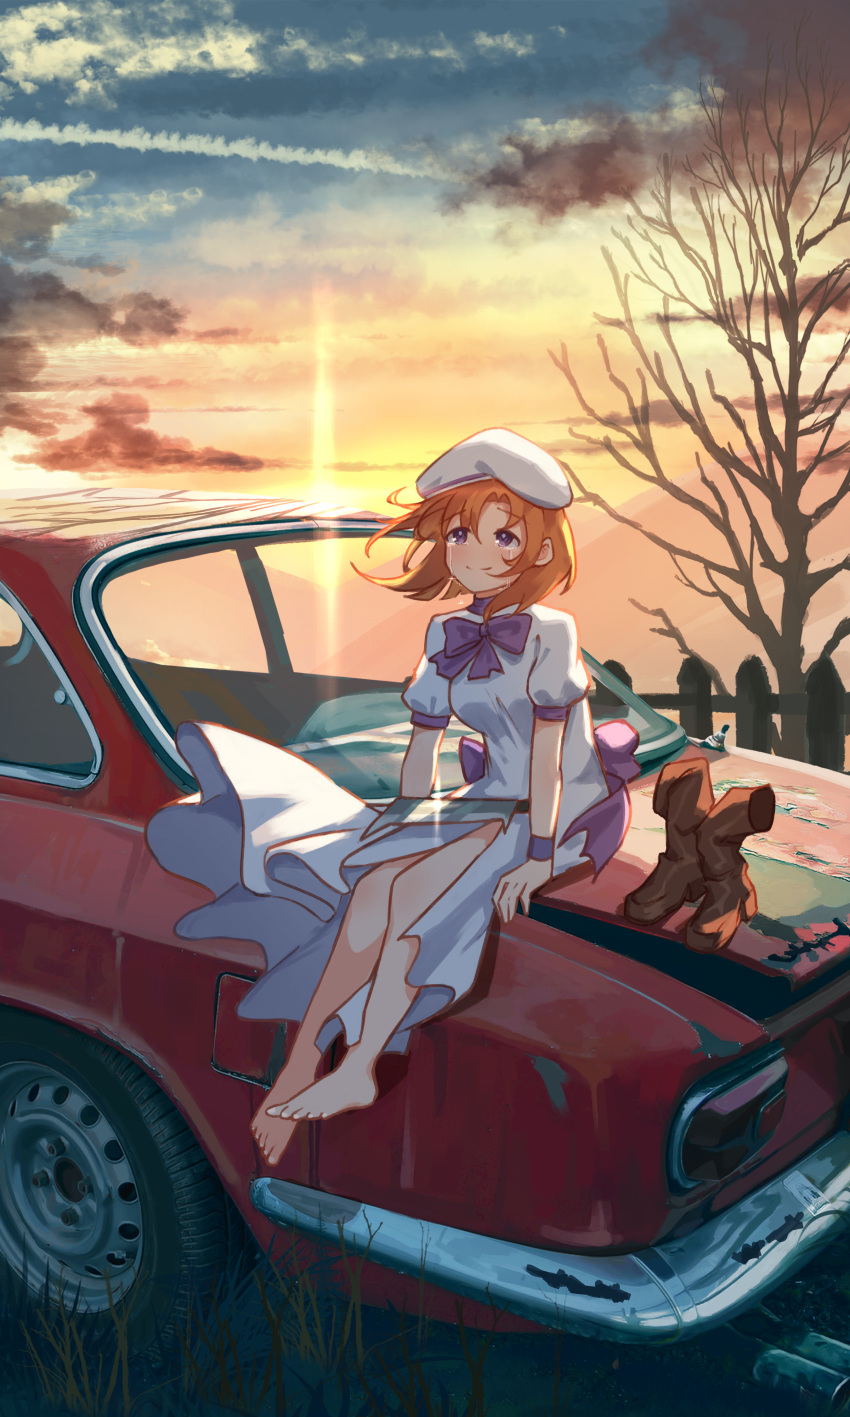 1girl absurdres arm_support barefoot boots_removed bow brown_footwear car commentary commission dress dusk fence footwear_removed grass ground_vehicle hat highres higurashi_no_naku_koro_ni jl_tan motor_vehicle orange_hair outdoors puffy_short_sleeves puffy_sleeves purple_bow ryuuguu_rena short_hair short_sleeves sitting solo sunset tree white_dress white_headwear